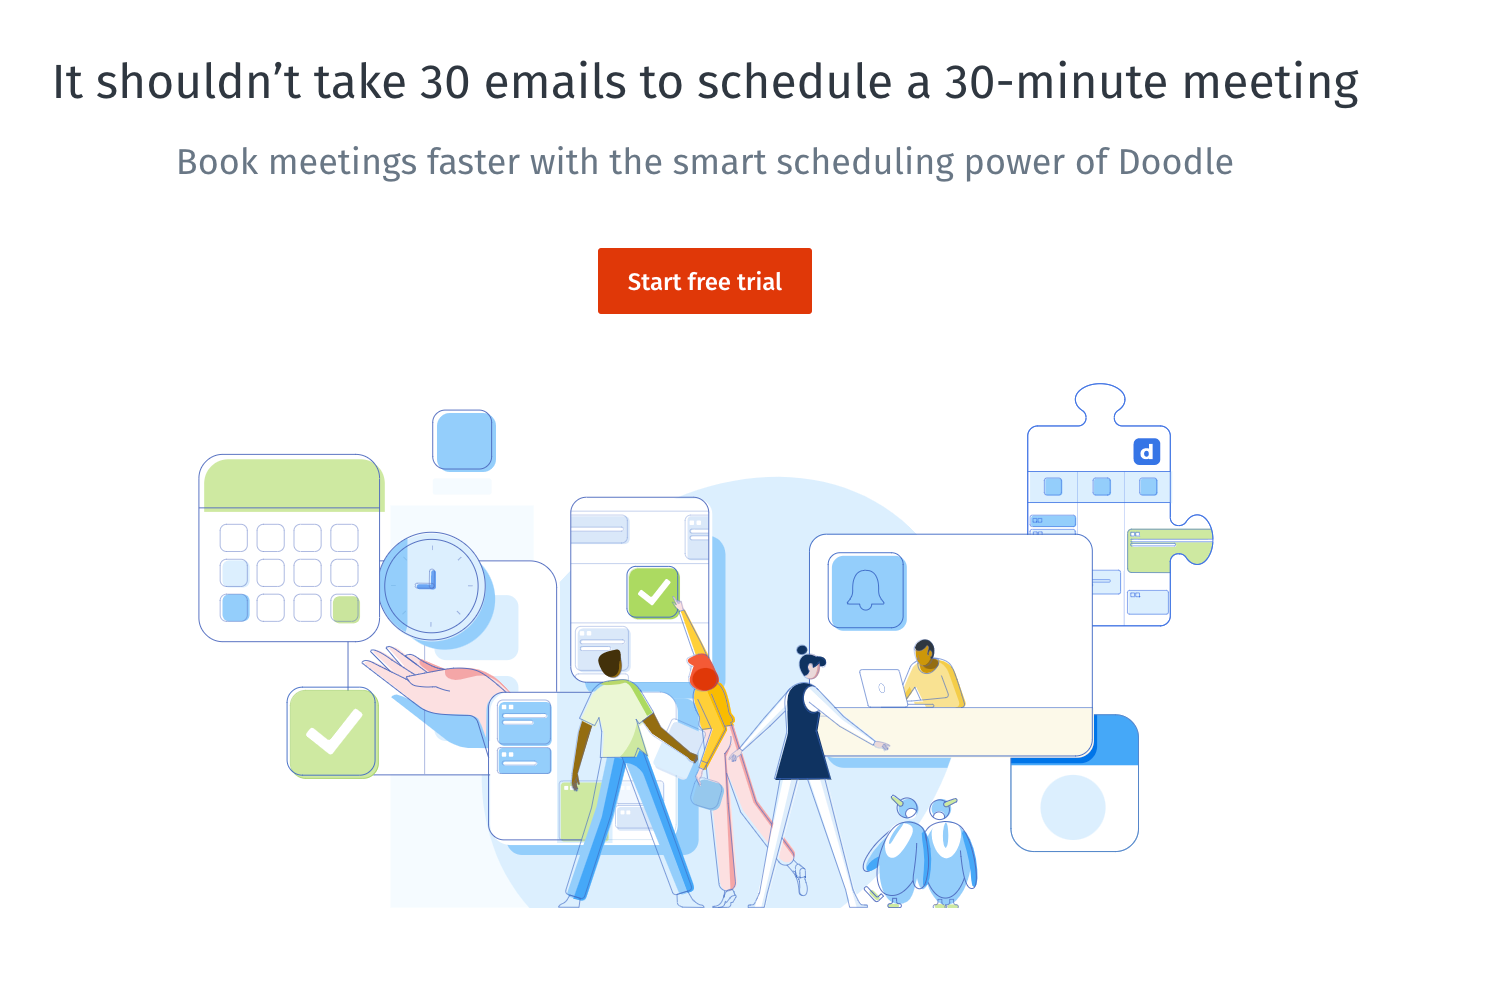 Doodle scheduling app homepage featuring animated characters managing time and meetings